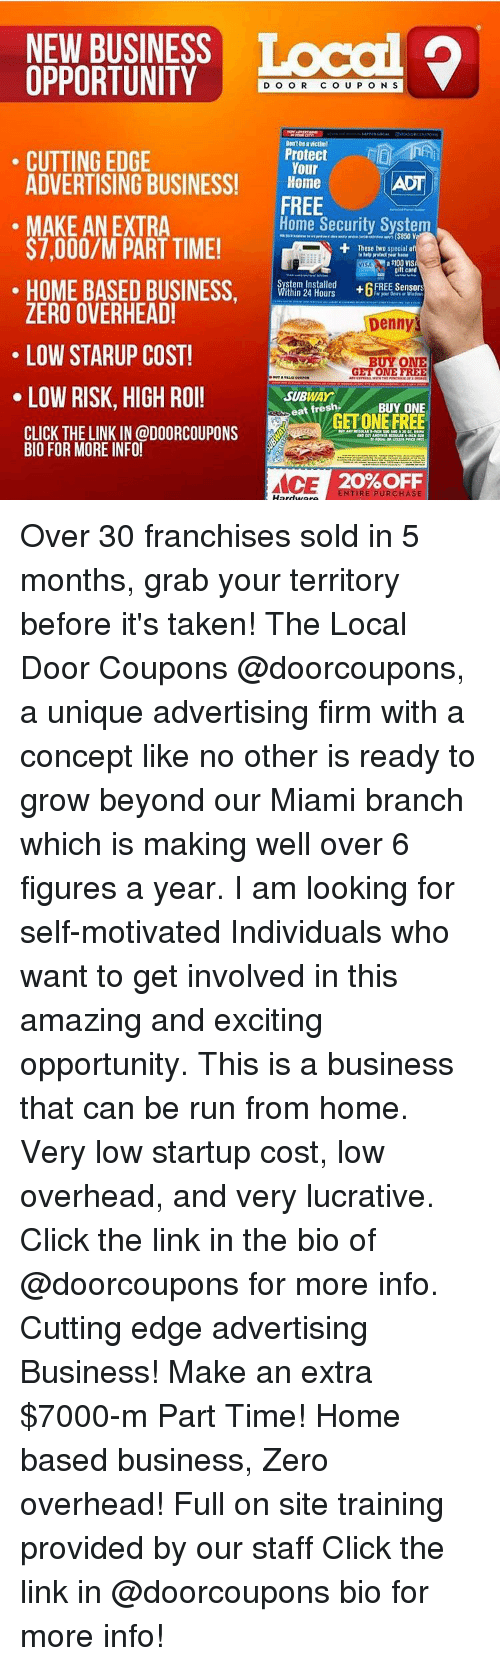 Local door coupons franchise cost